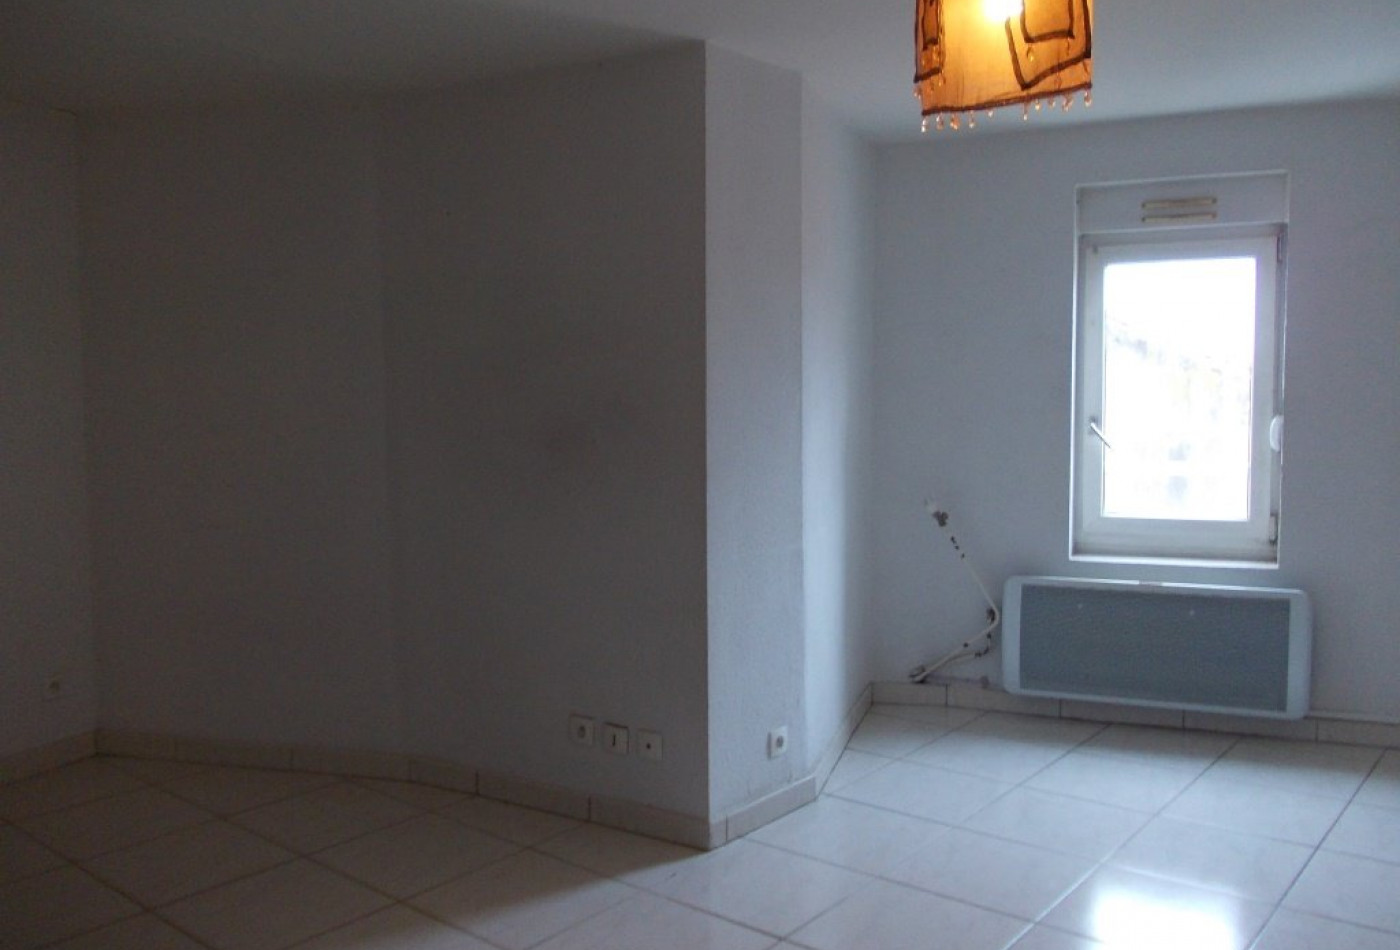 Appartement en location beziers rf 34409825 belon for Location appartement meuble beziers